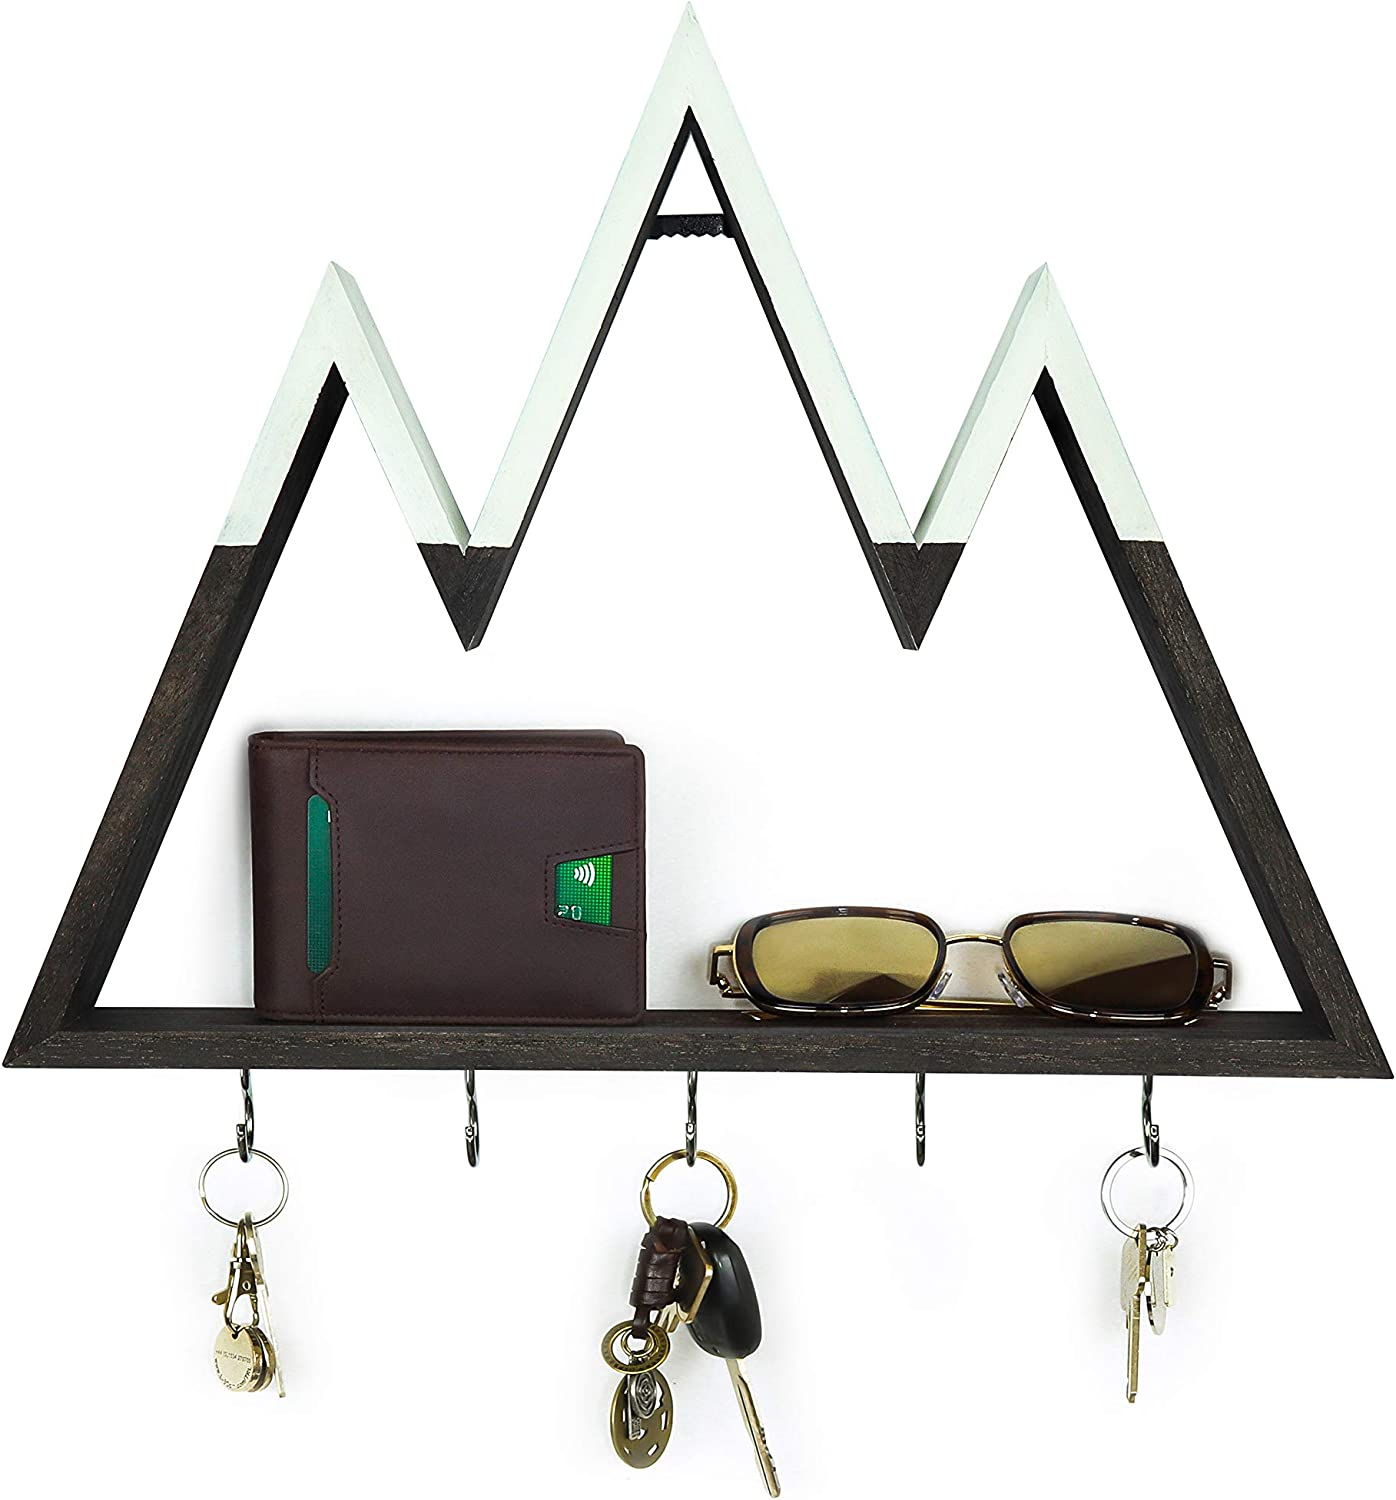 Leivo Mountain Shelf with Key Holders   Decorative Key Holder for Wall and Floating Shelf for Mountain Decor in Entryway, Kitchen, Bedroom, Nursery and Cabin   Key Hangers and Wall Jewelry Organizer